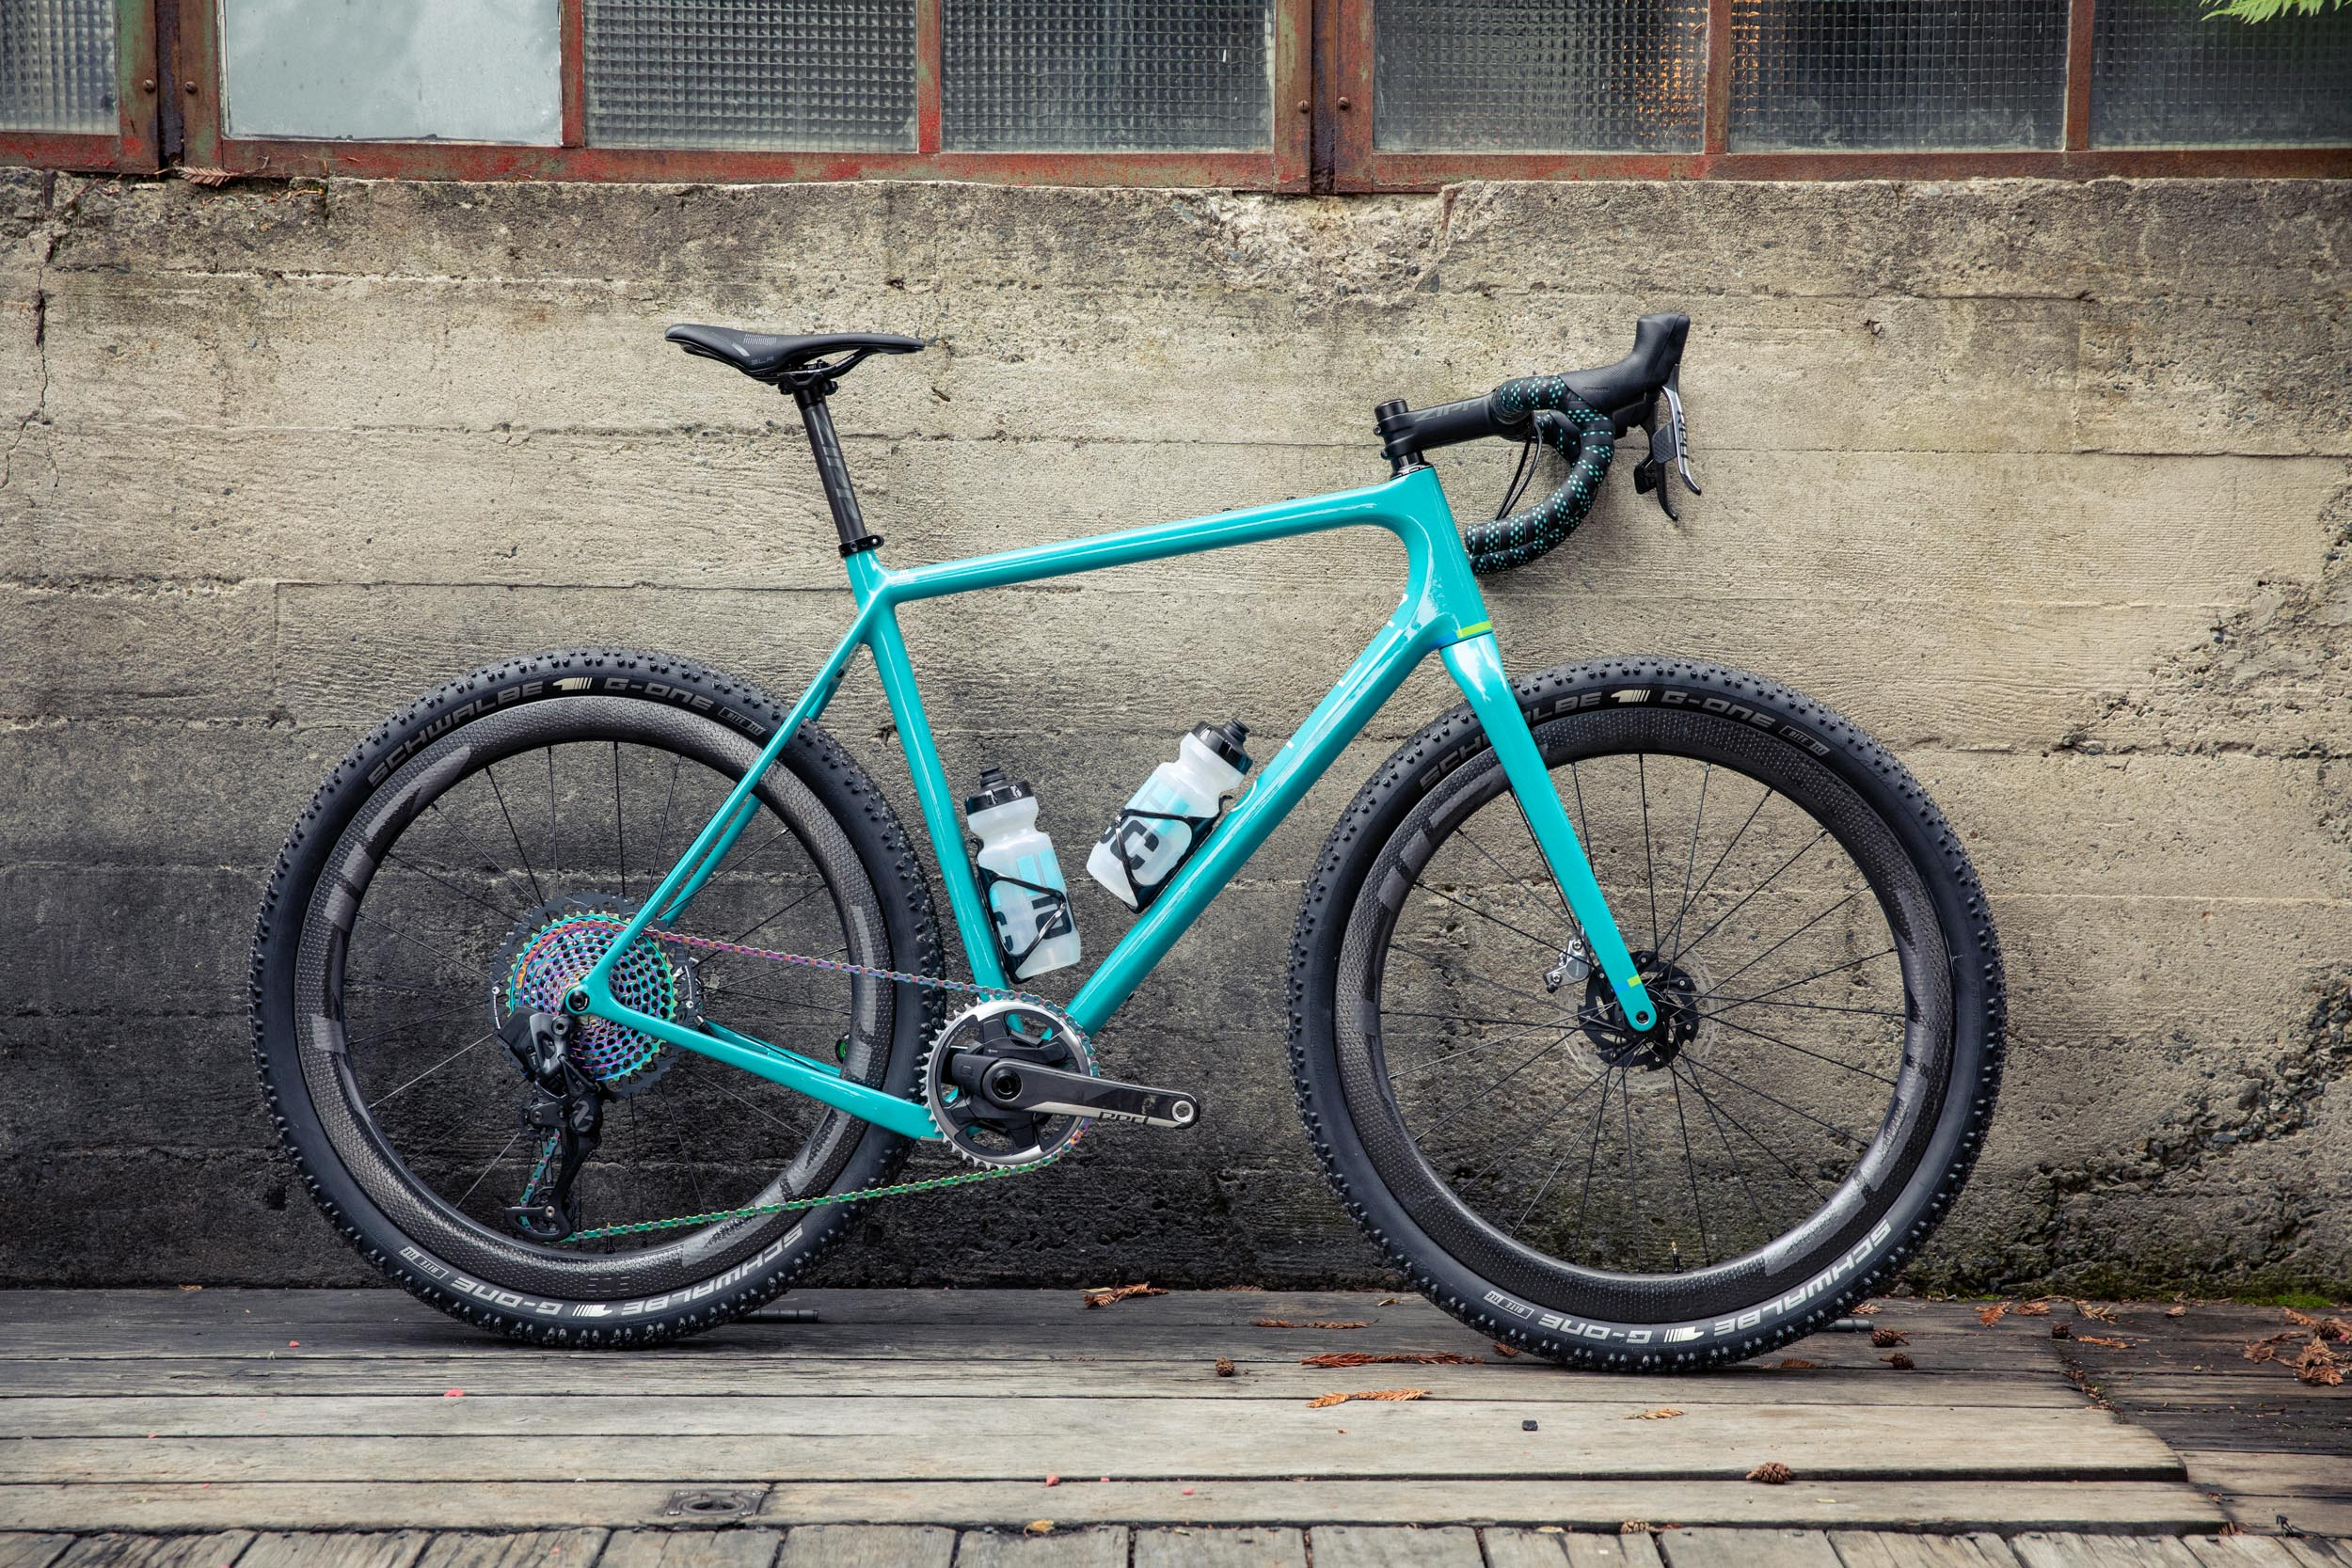 Open WIDE Turquoise Sram Zipp bike profile